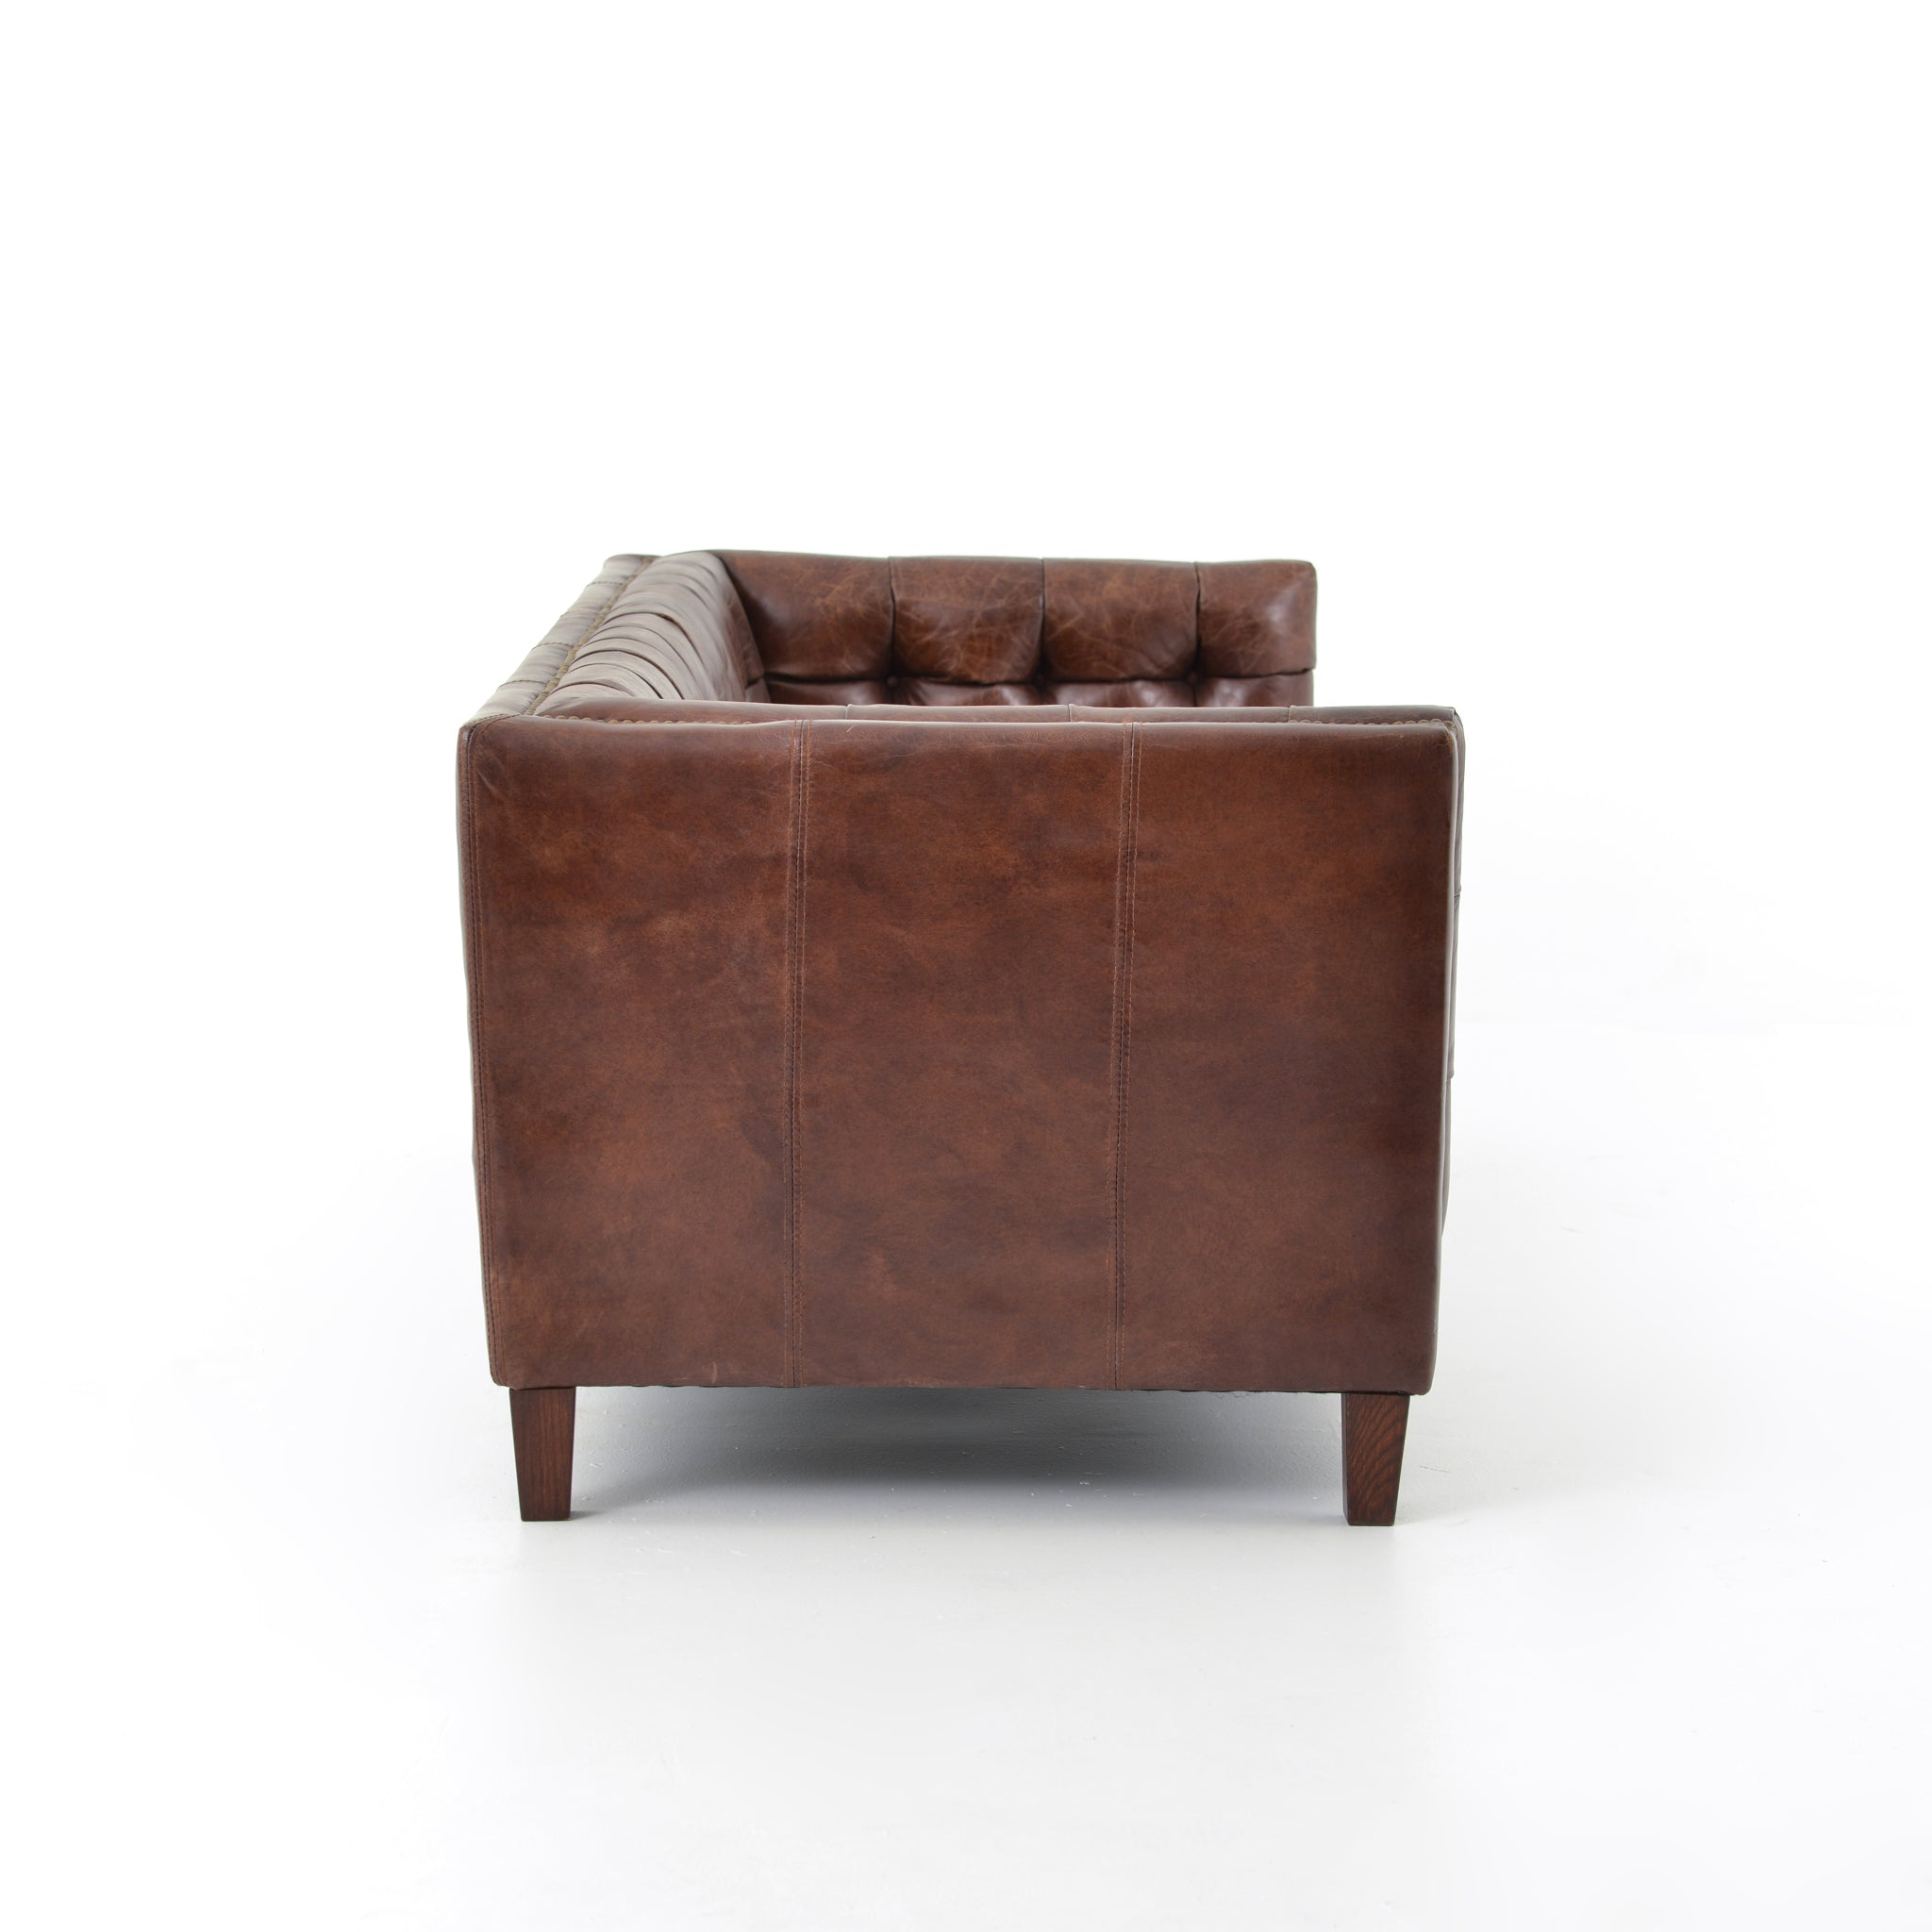 "85"" Top Grain Leather Brown Cigar Leather Sofa"